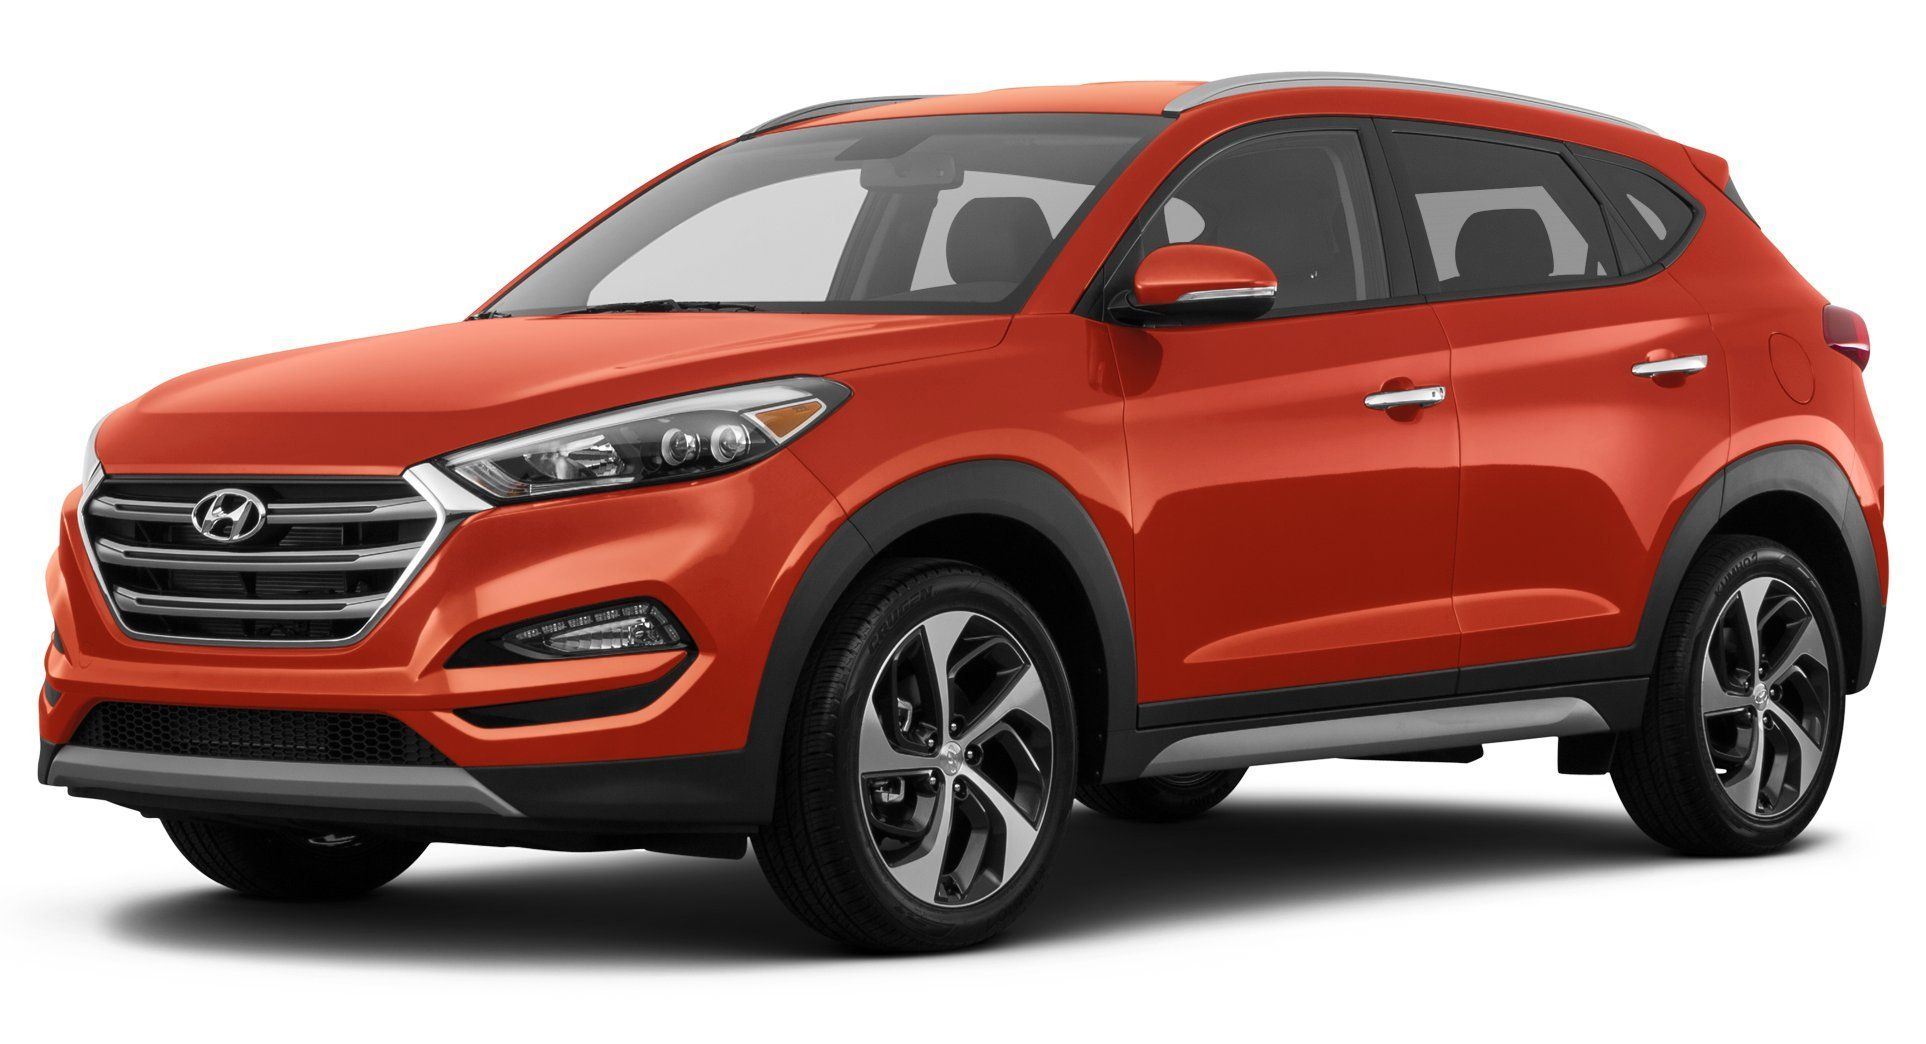 2017 Hyundai Tucson Limited, All Wheel Drive Sport suv